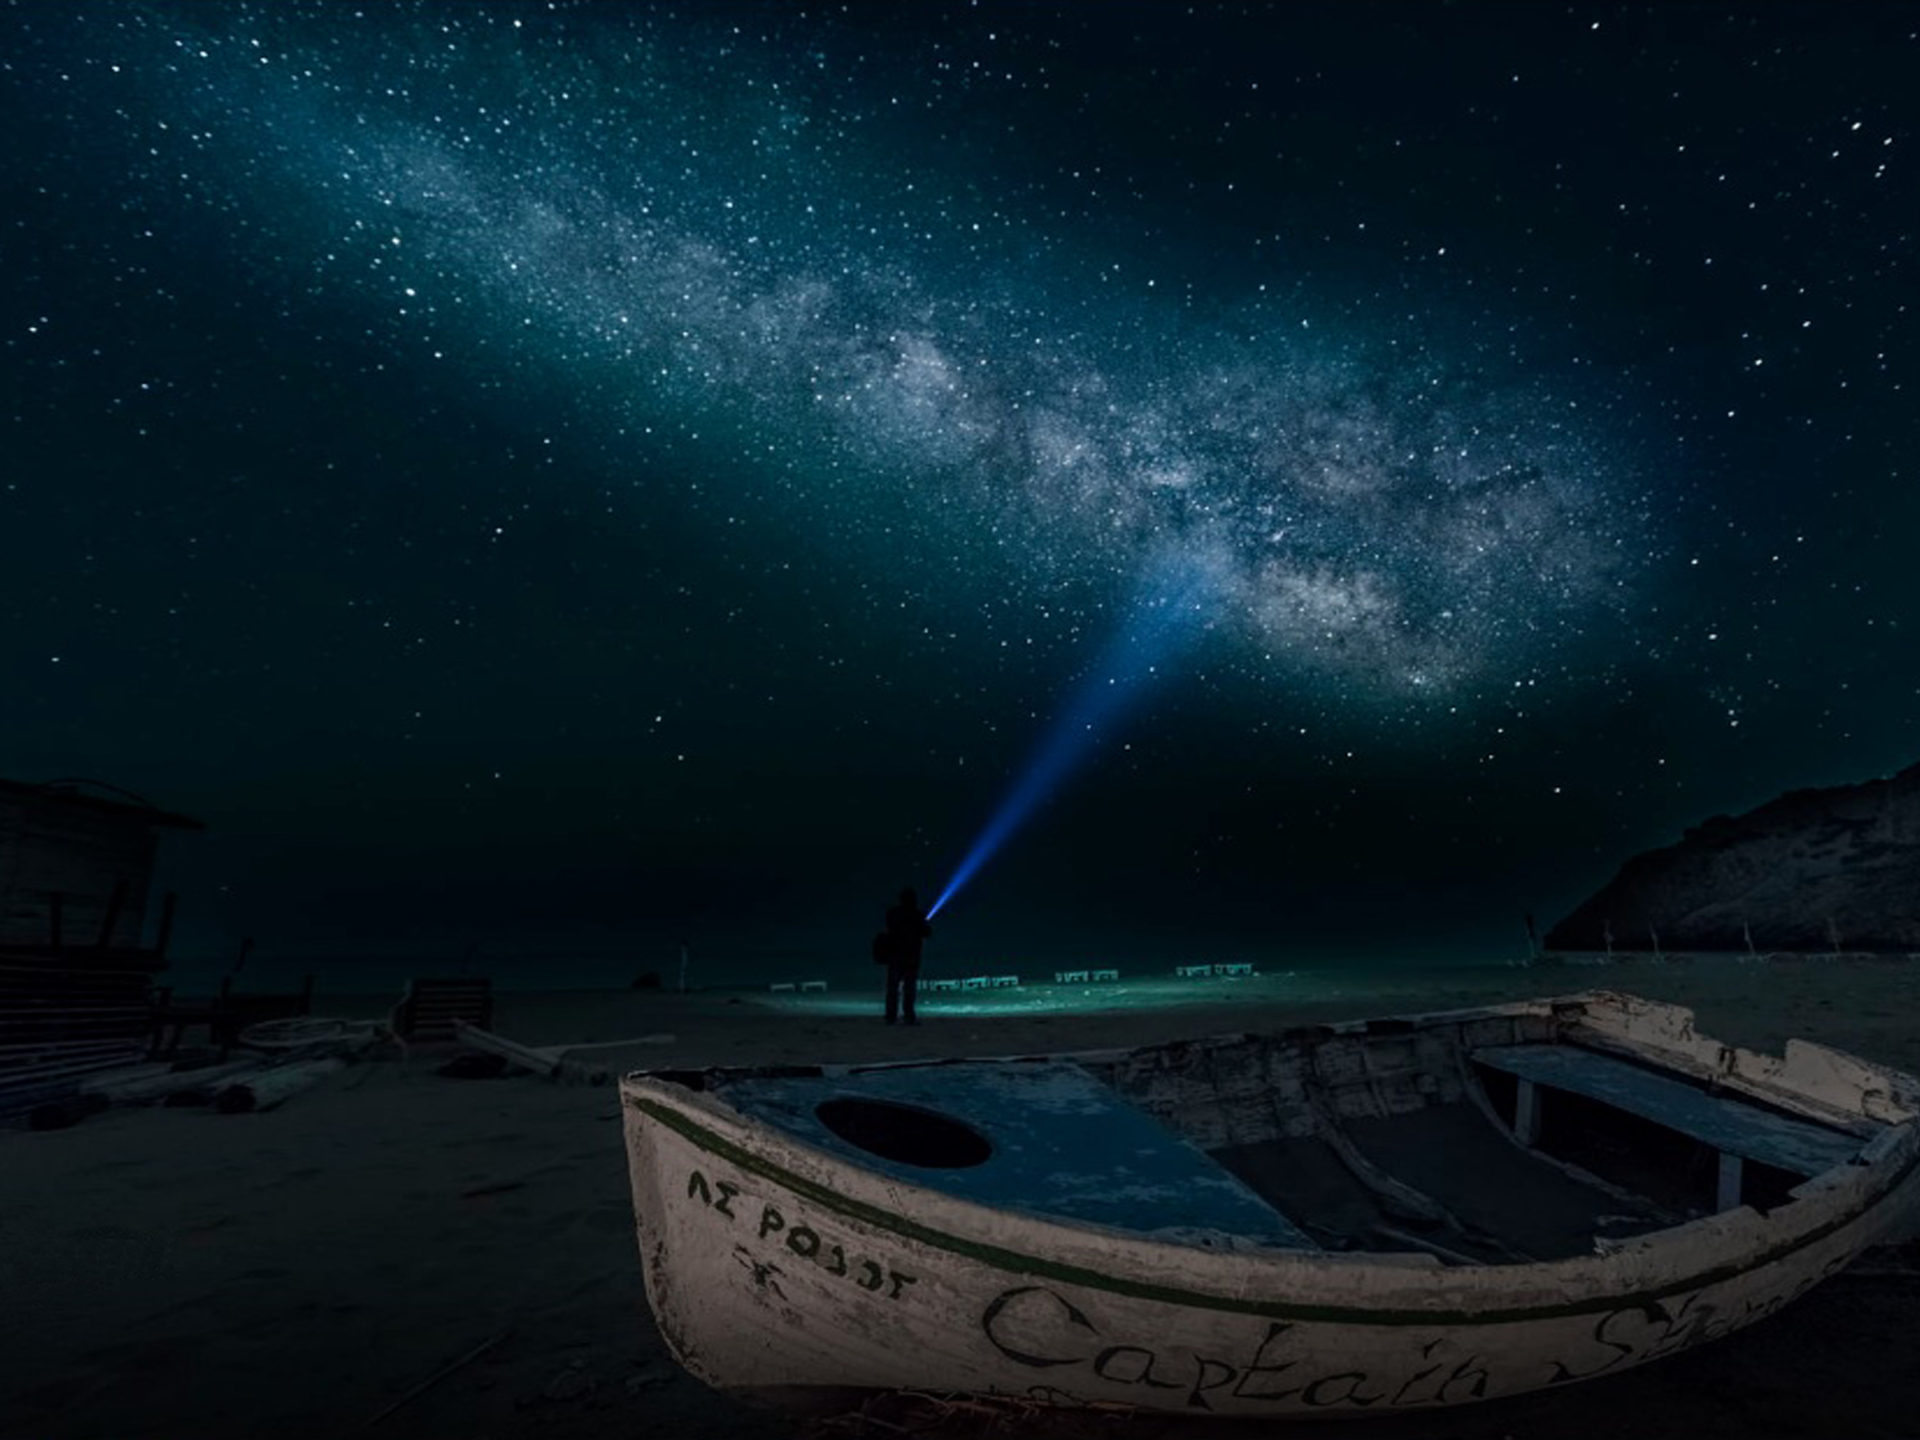 Free Hd Wallpaper For Desktop Background Sandy Beach At Night Time Boat Sky Star Digital Art